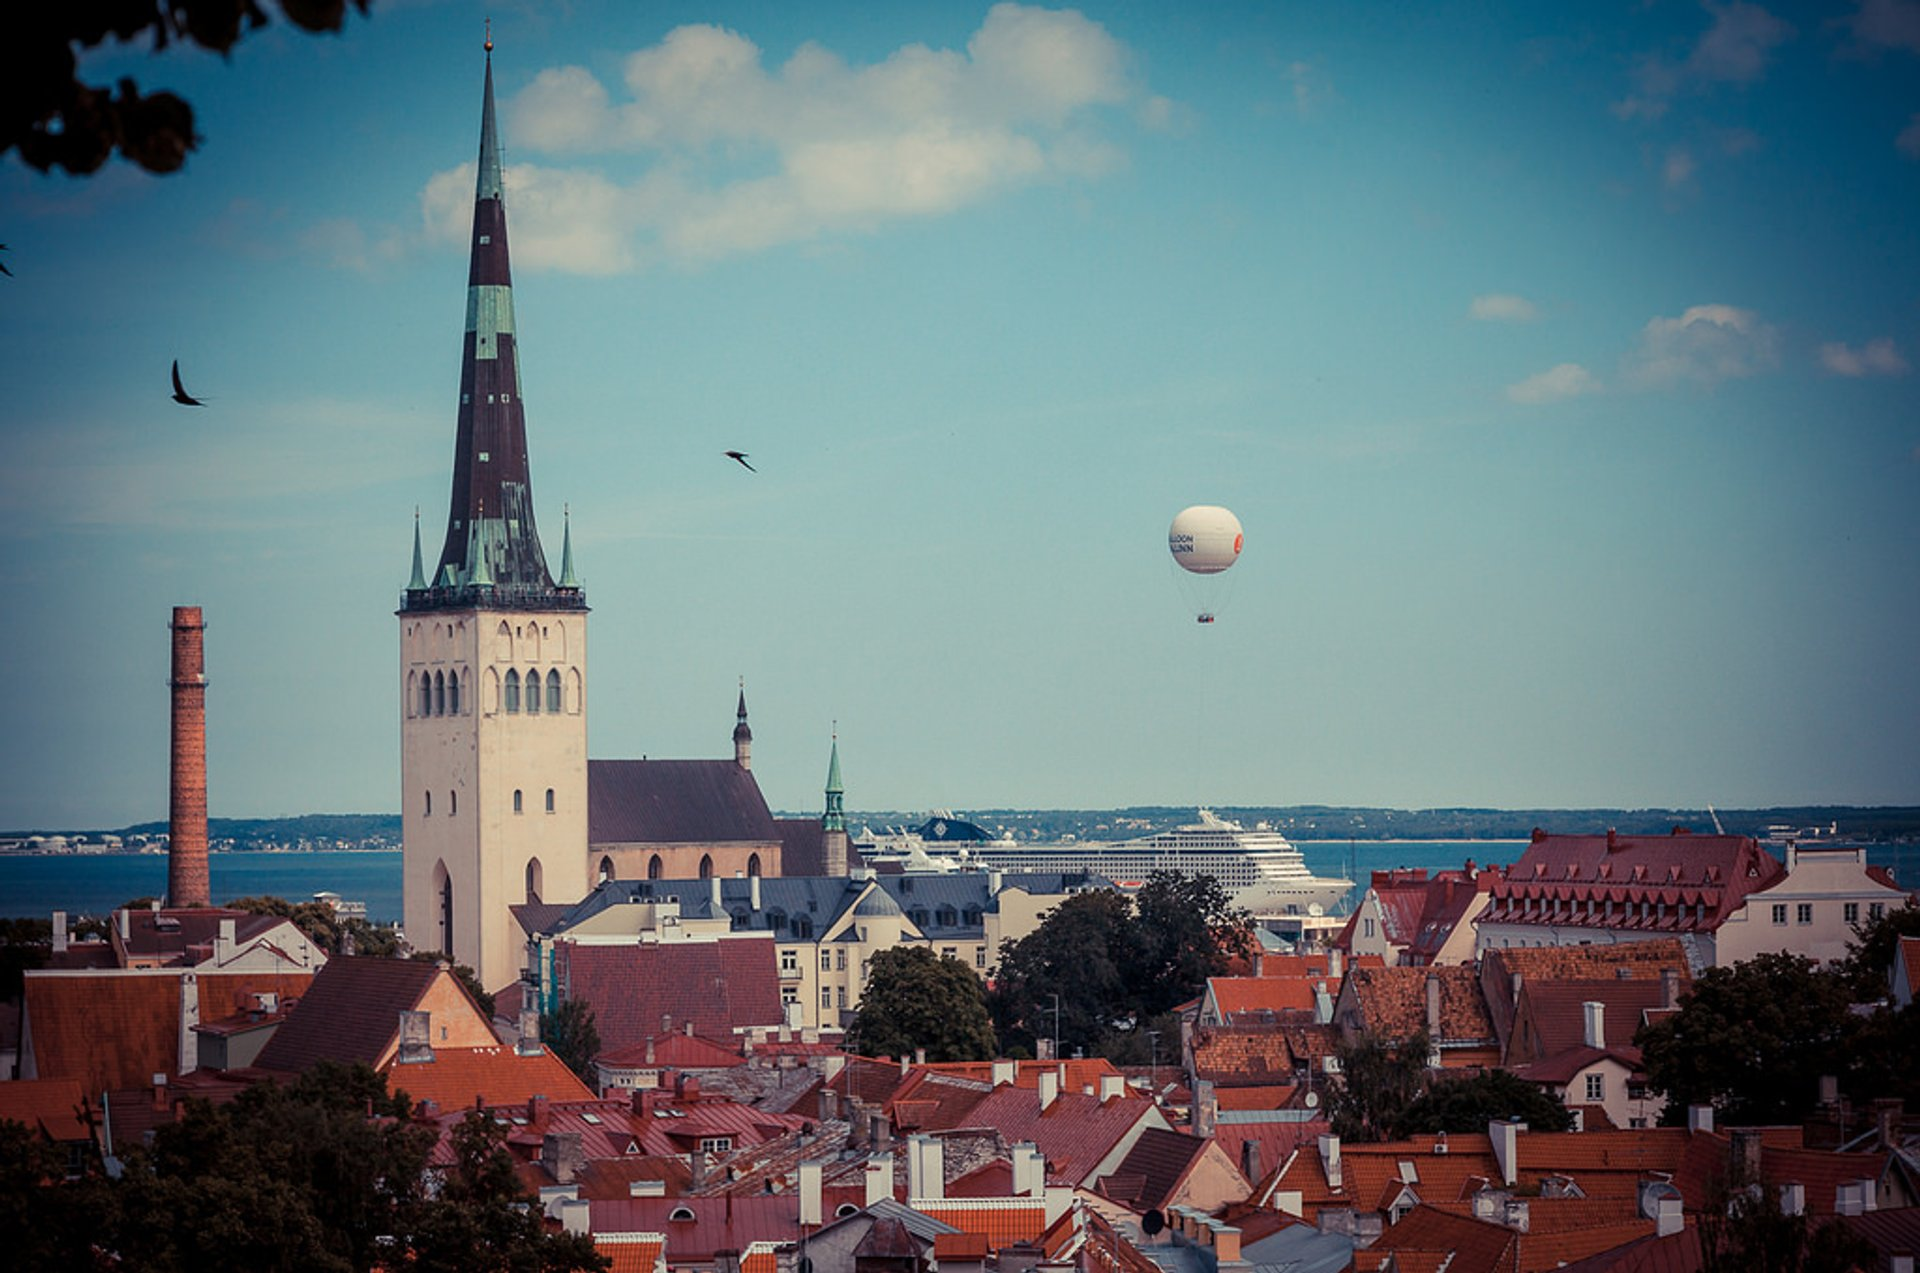 Balloon Tallinn in Estonia - Best Season 2019